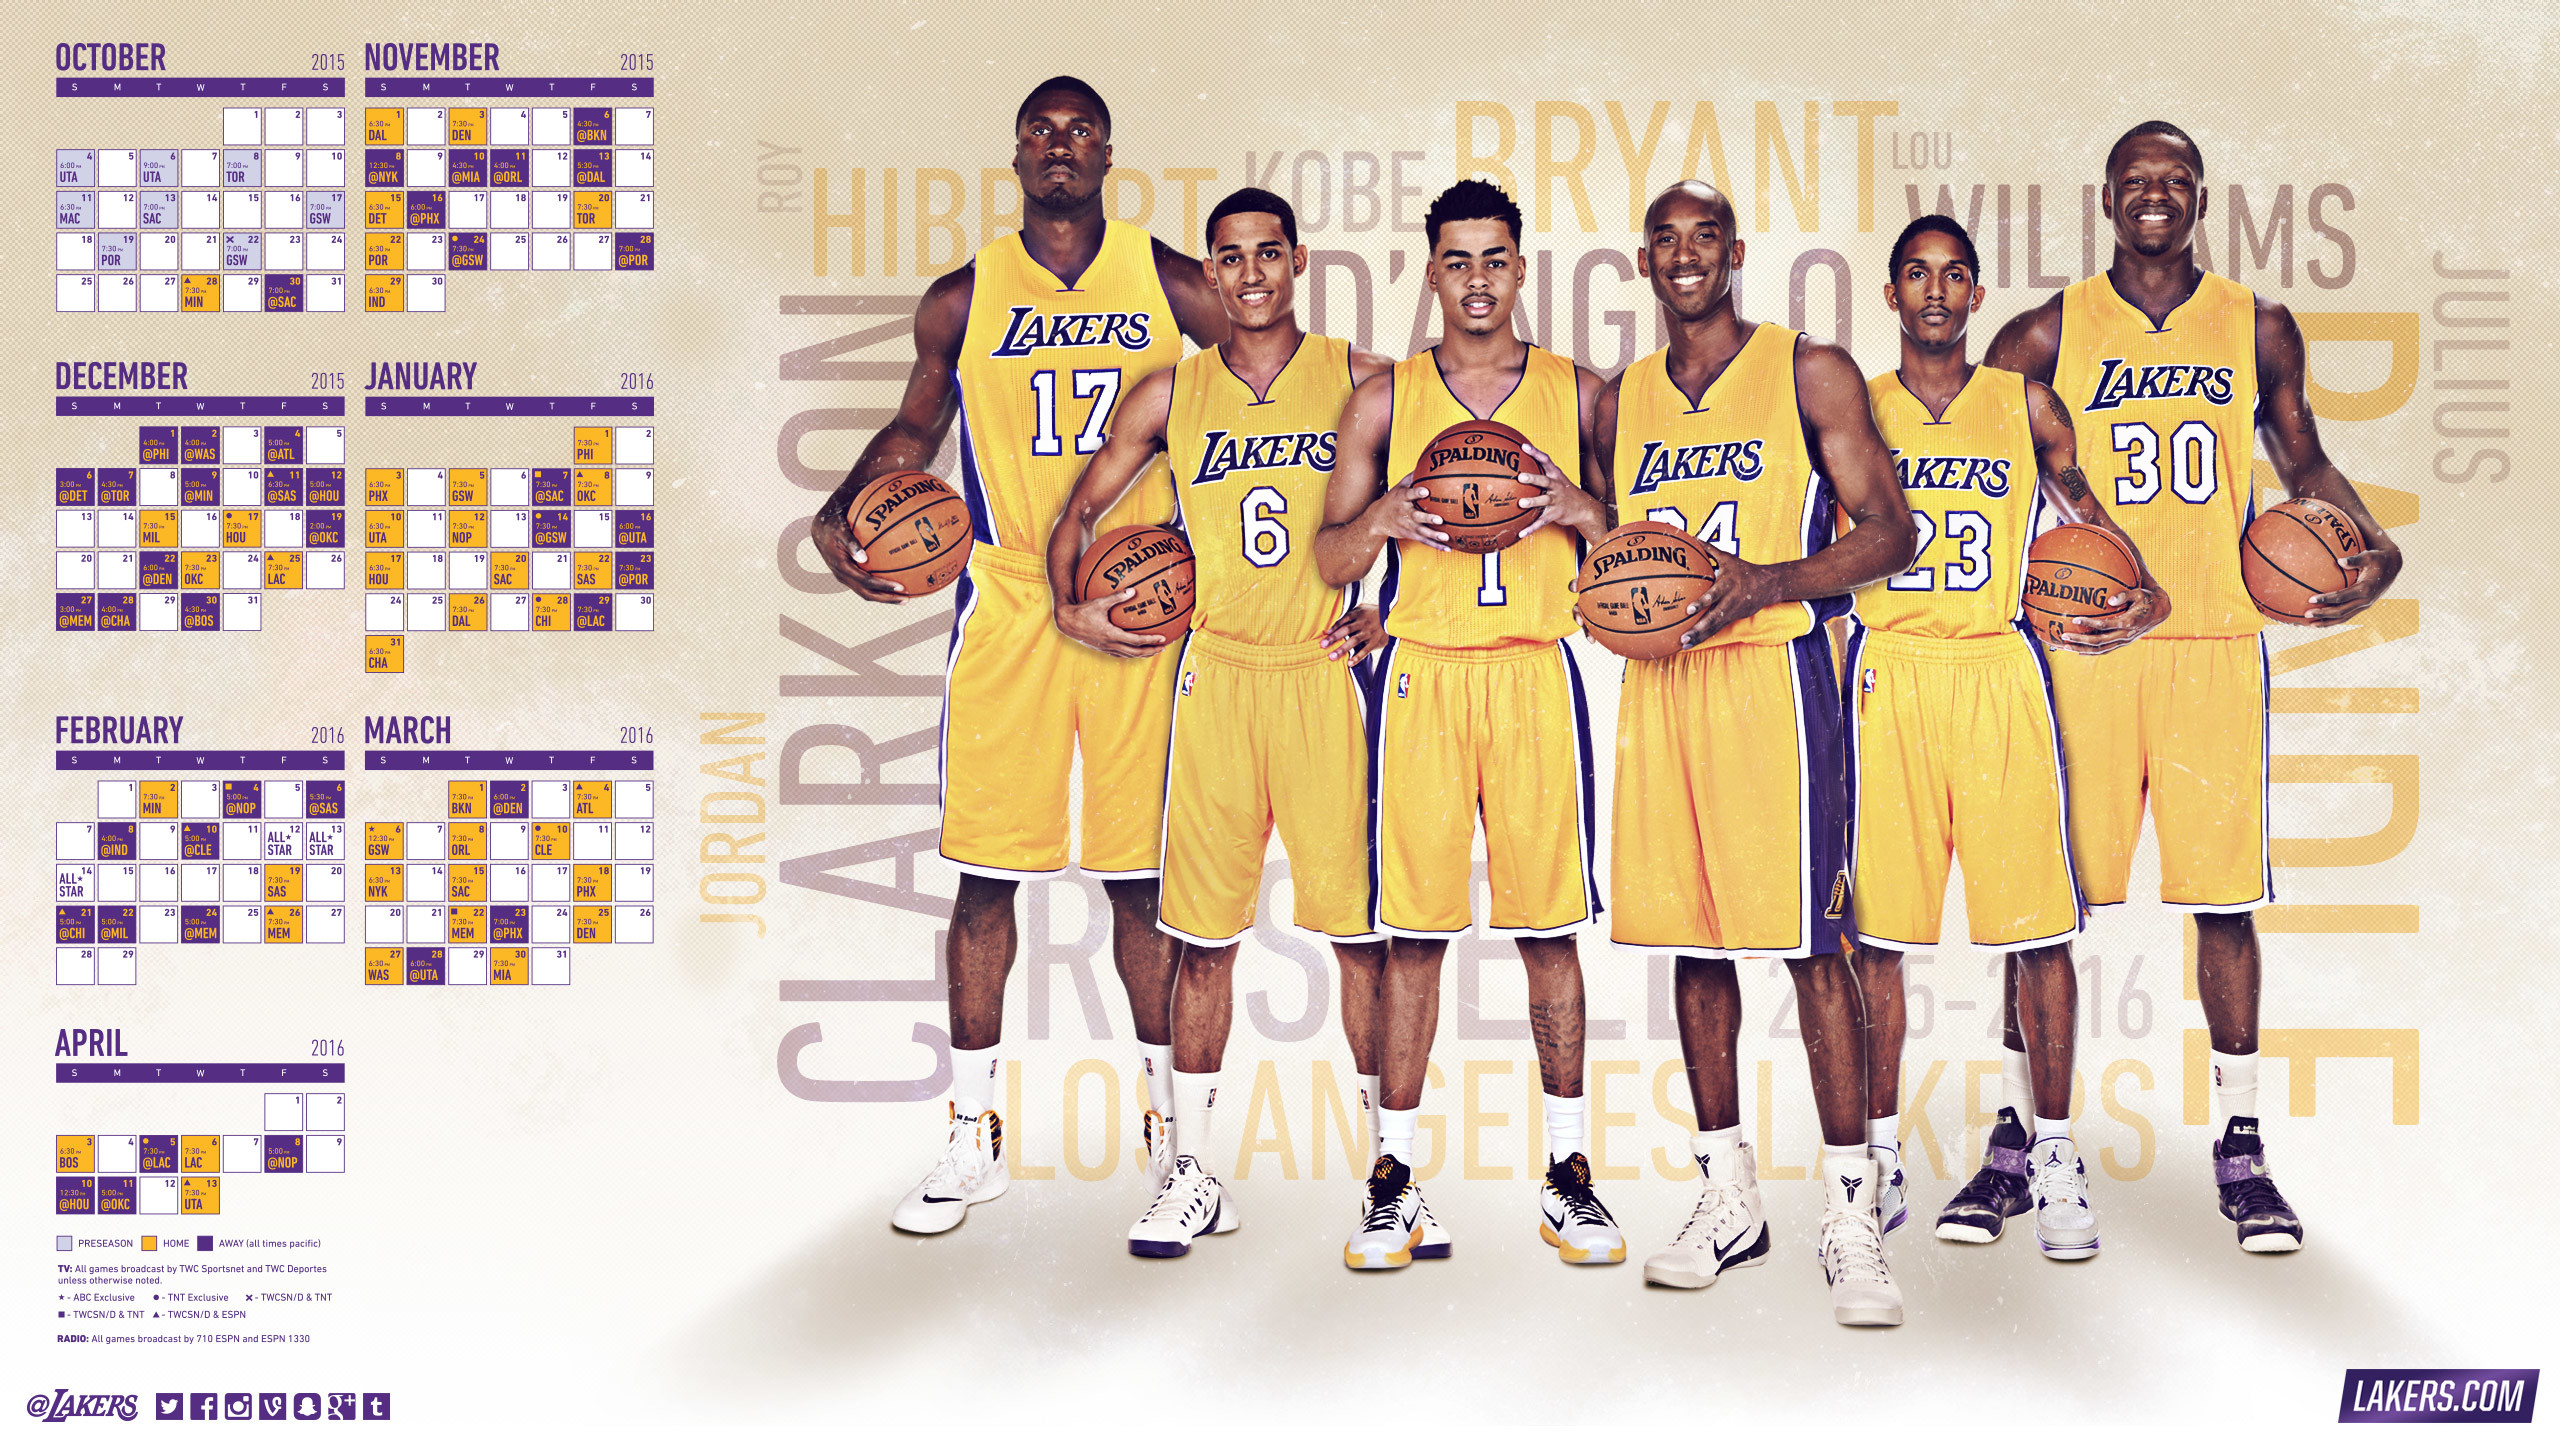 It's just an image of Bright Lakers Schedule 2020-18 Printable